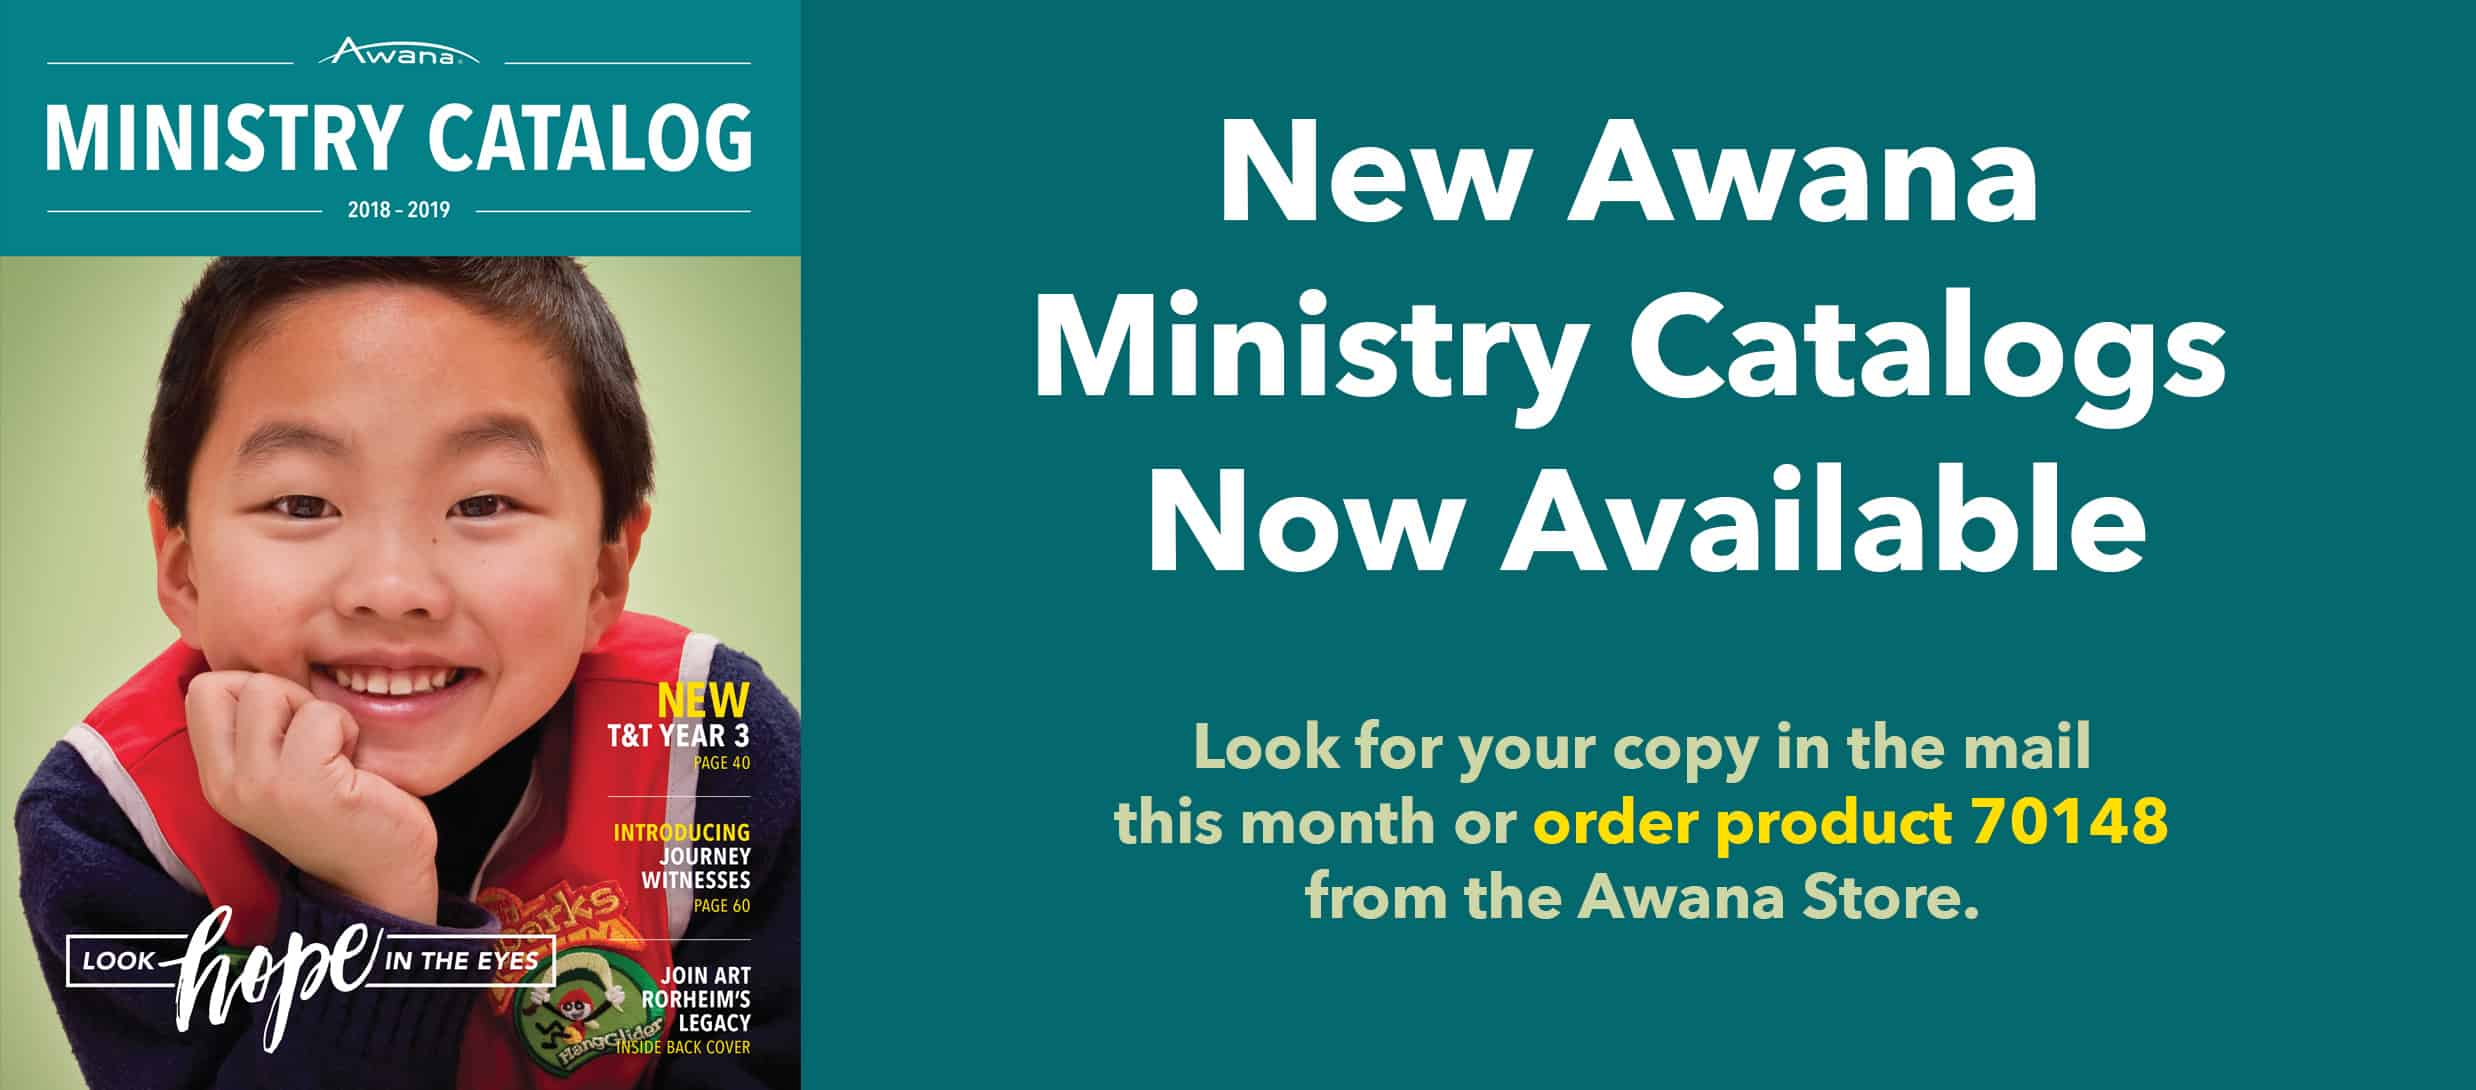 New Awana Ministry Catalogs Now Available